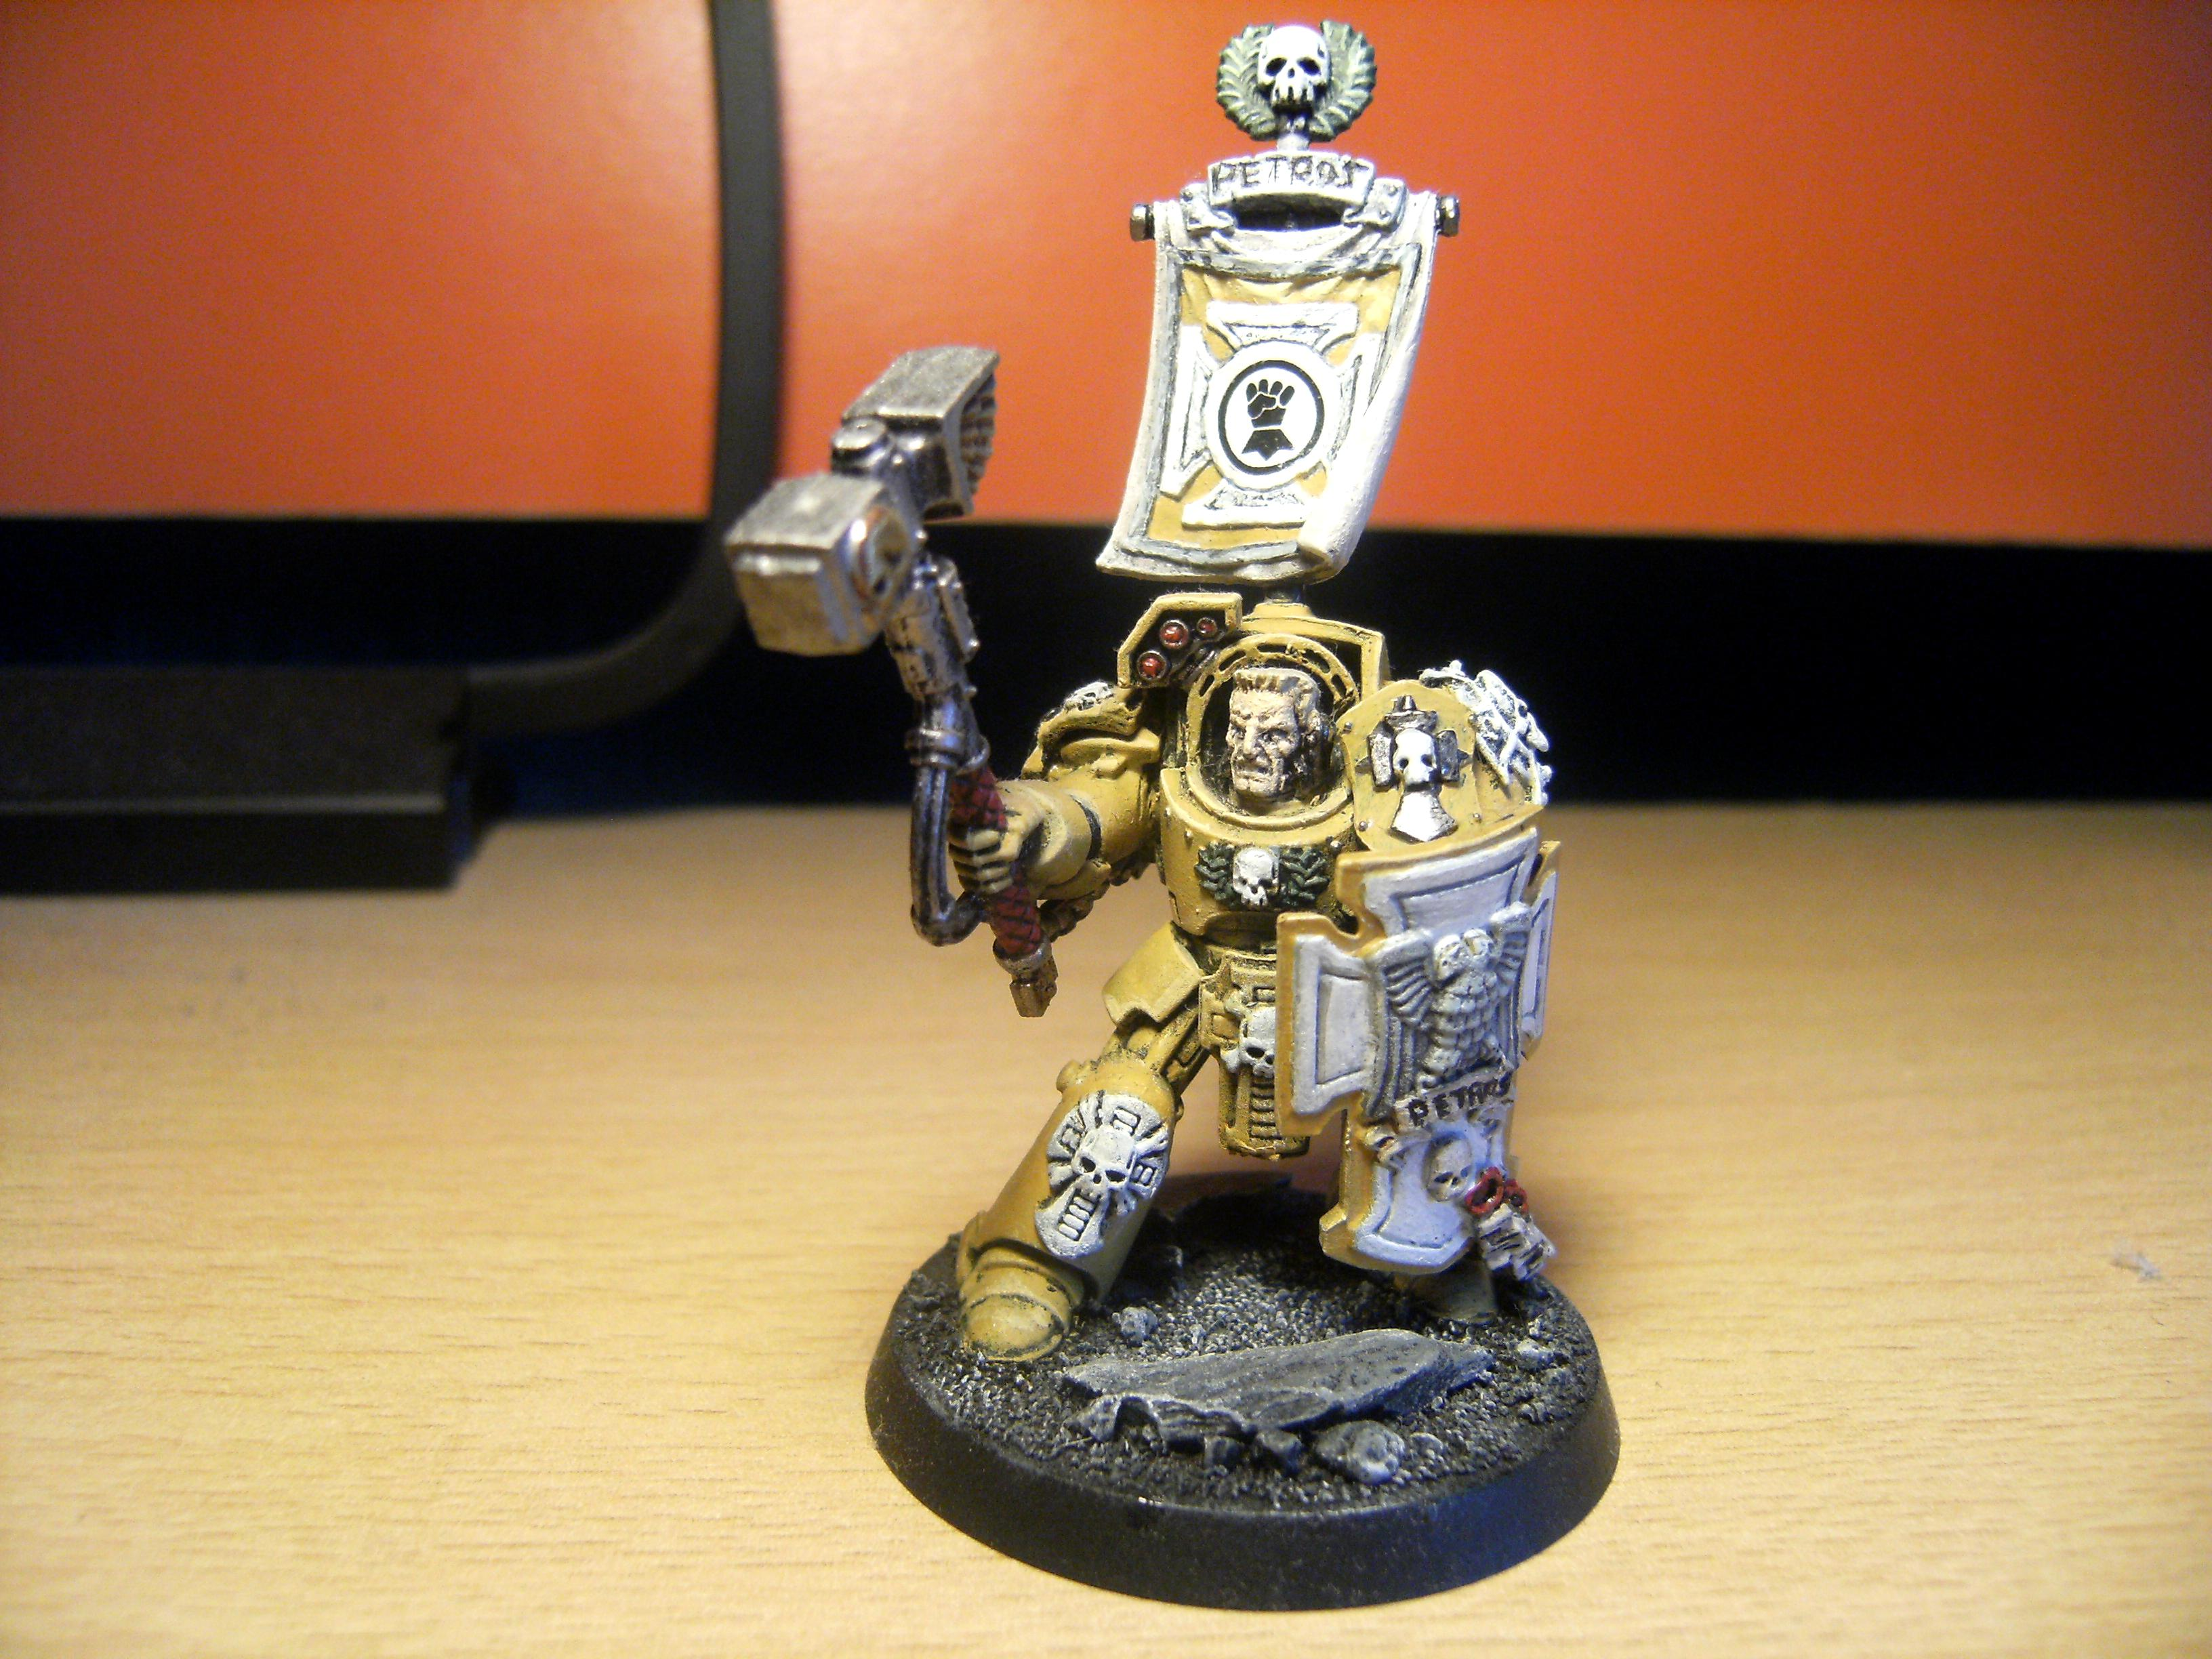 Imperial Fist Space Marines, Imperial Fists, Space Marines, Terminator Armor